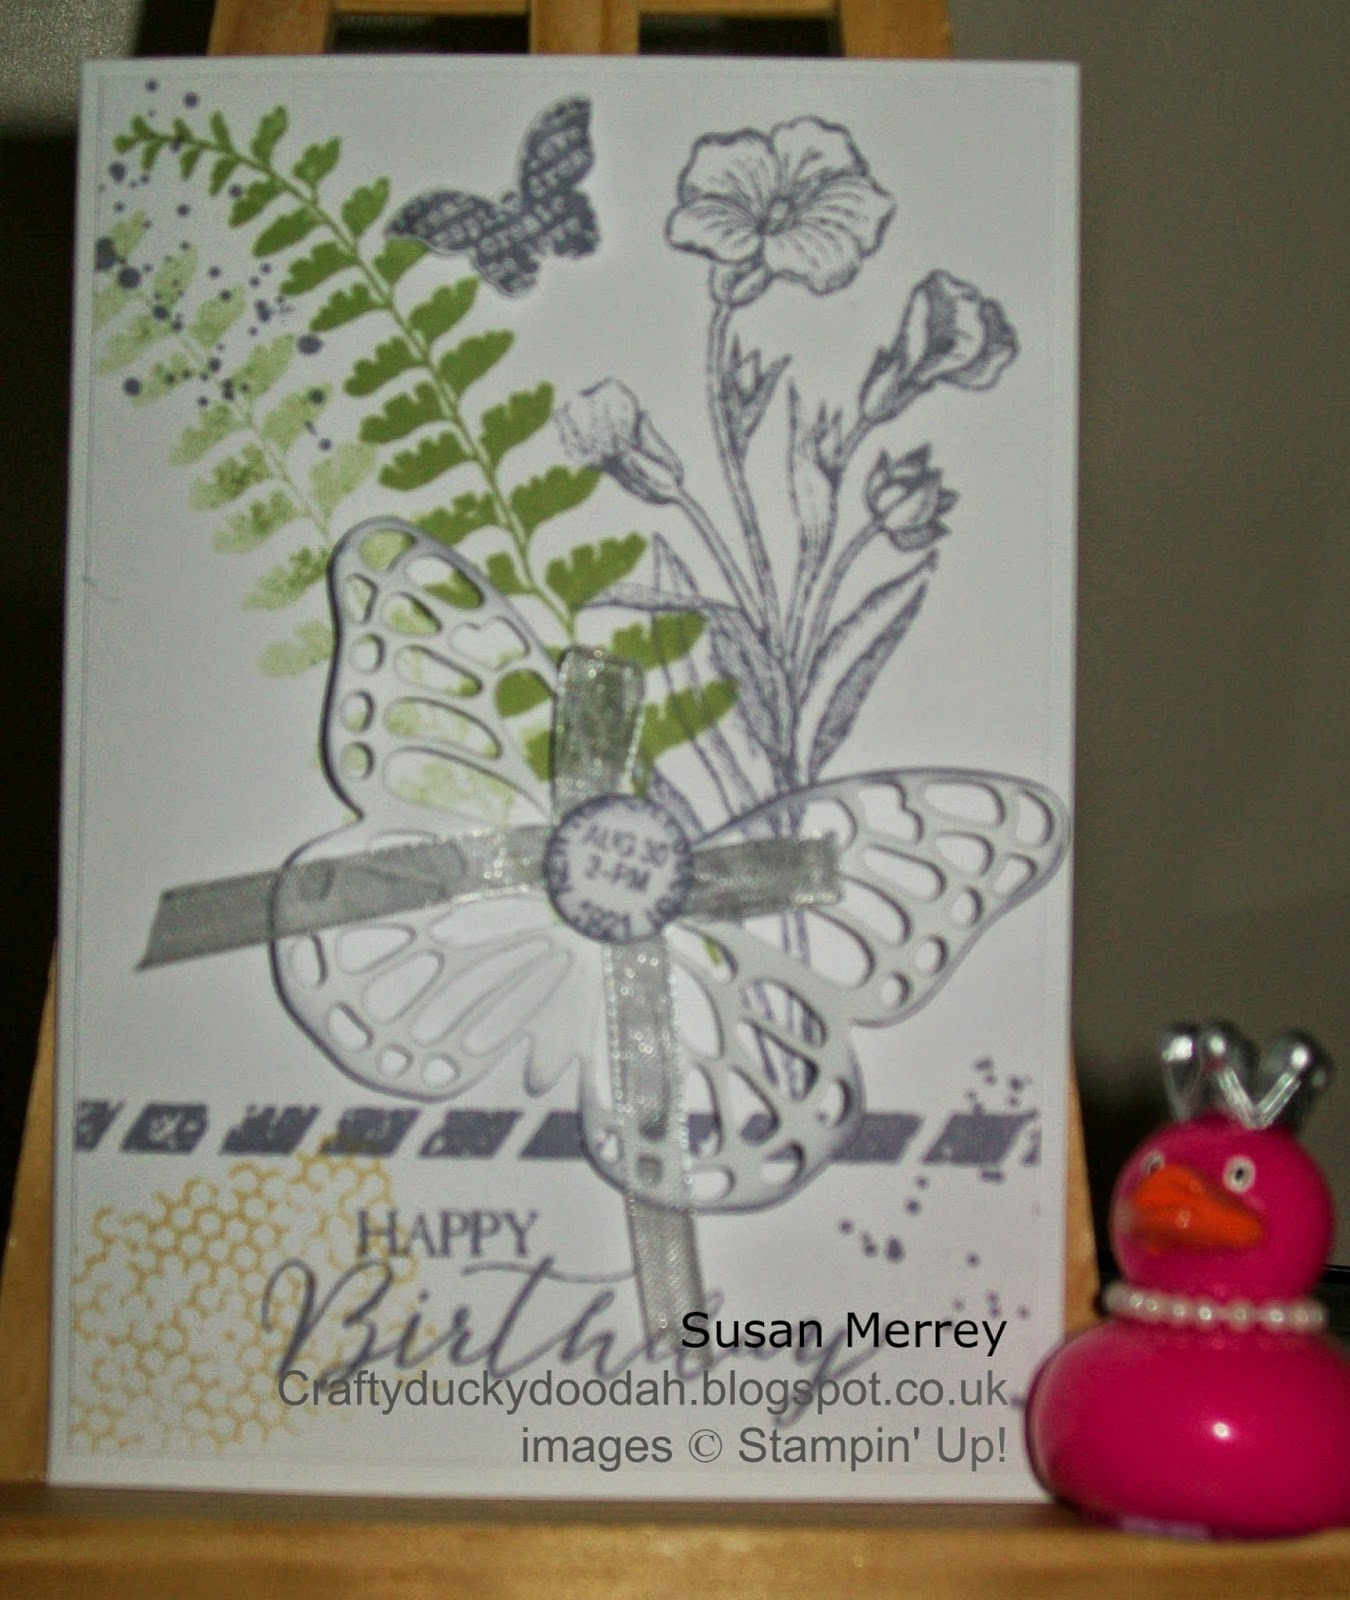 Stampin' Up! Independent Stampin' Up! Demonstrator Made by Susan Merrey Craftyduckydoodah Butterfly Basics